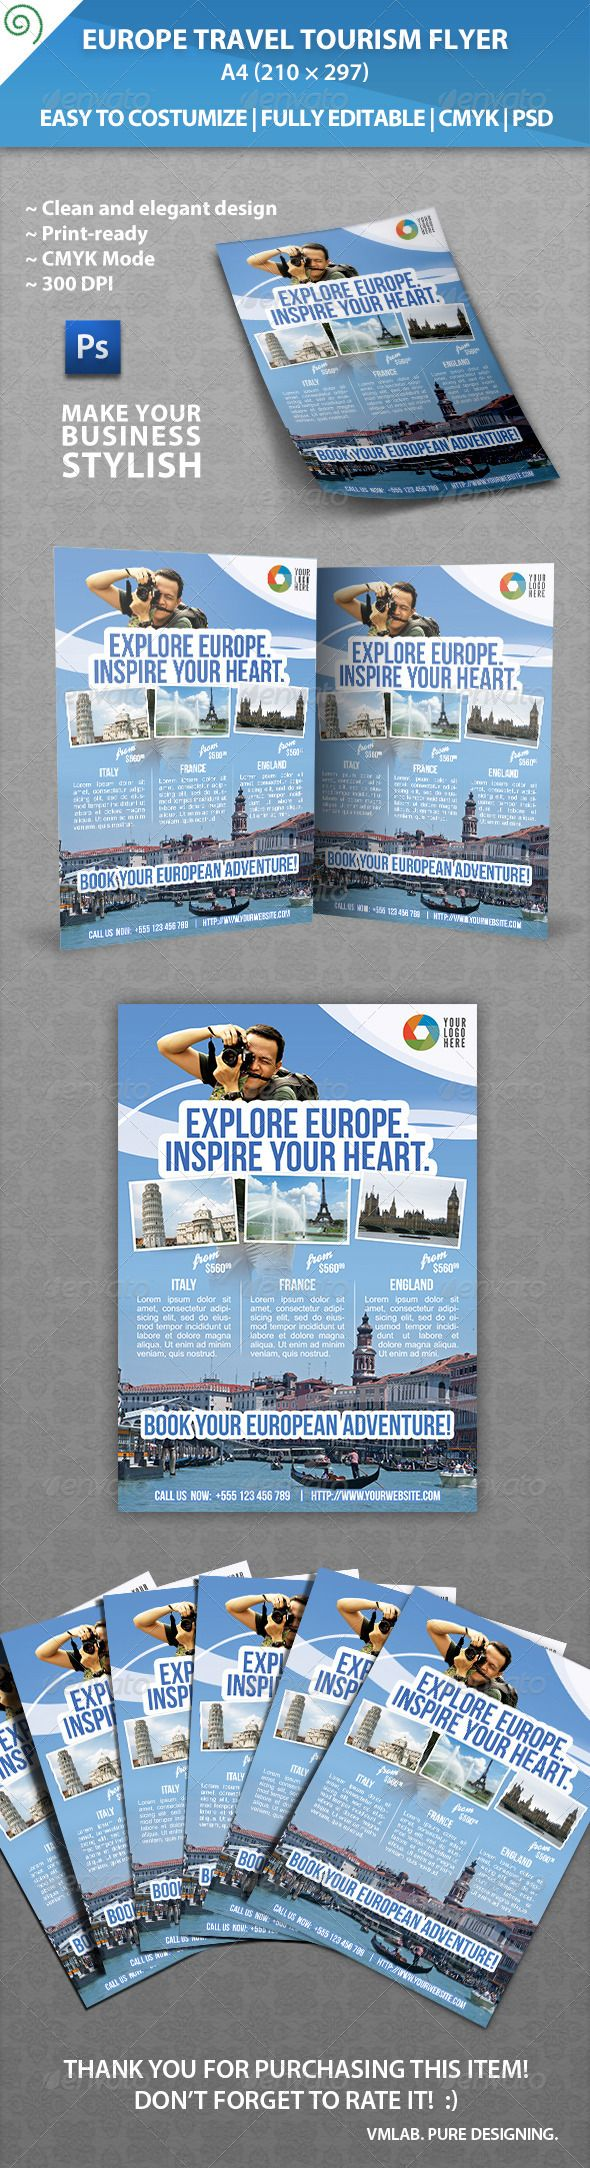 Europe Travel Tourism Flyer The 290 best